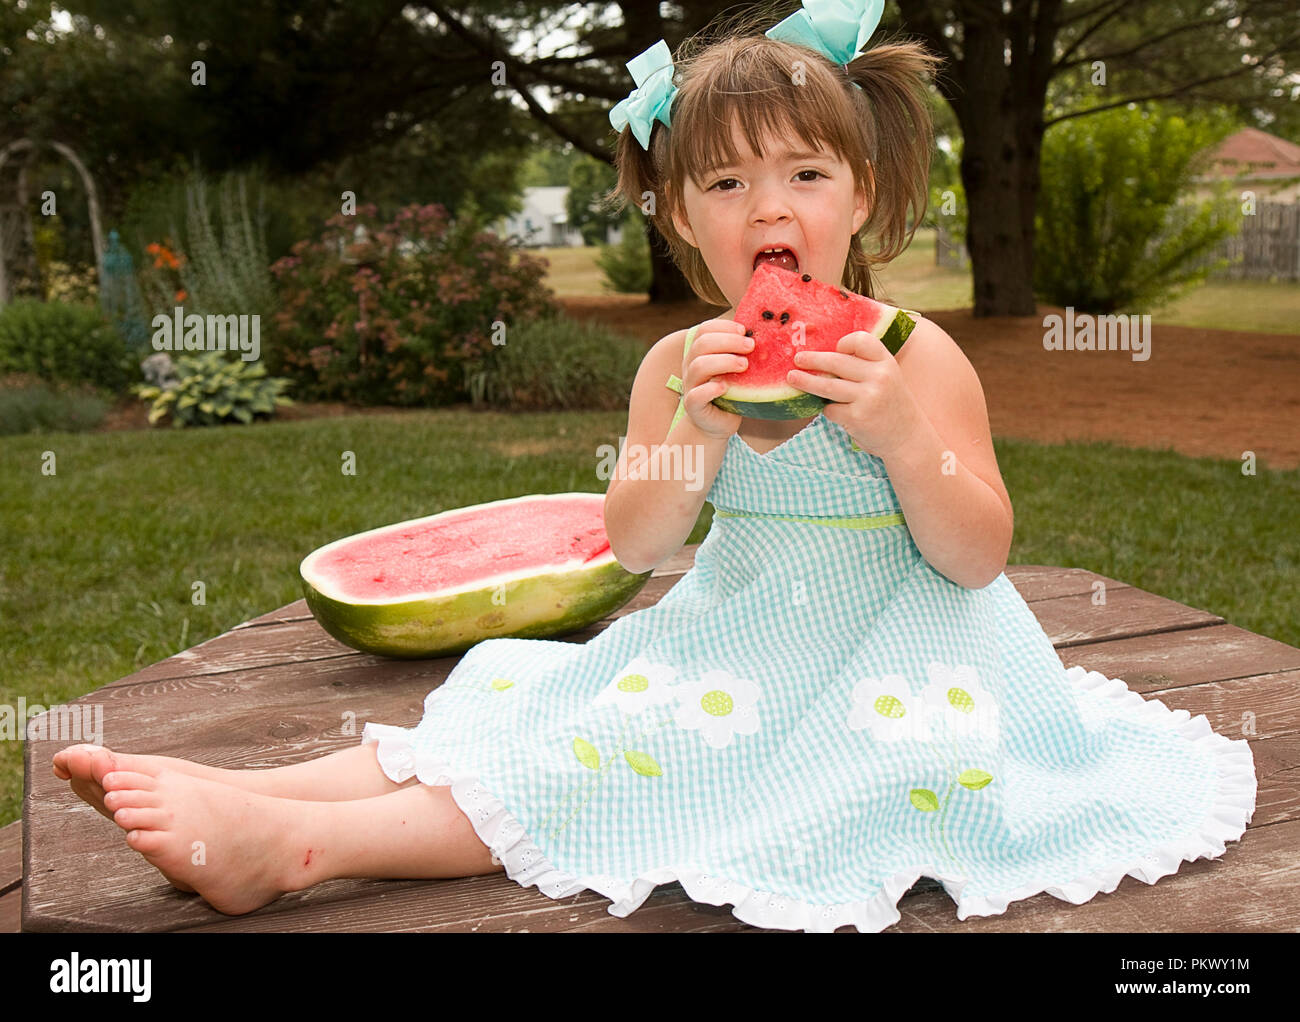 Small girl  outdoors with ribbon or hat playing.  Some images old fashion and some she is eating watermelon - Stock Image